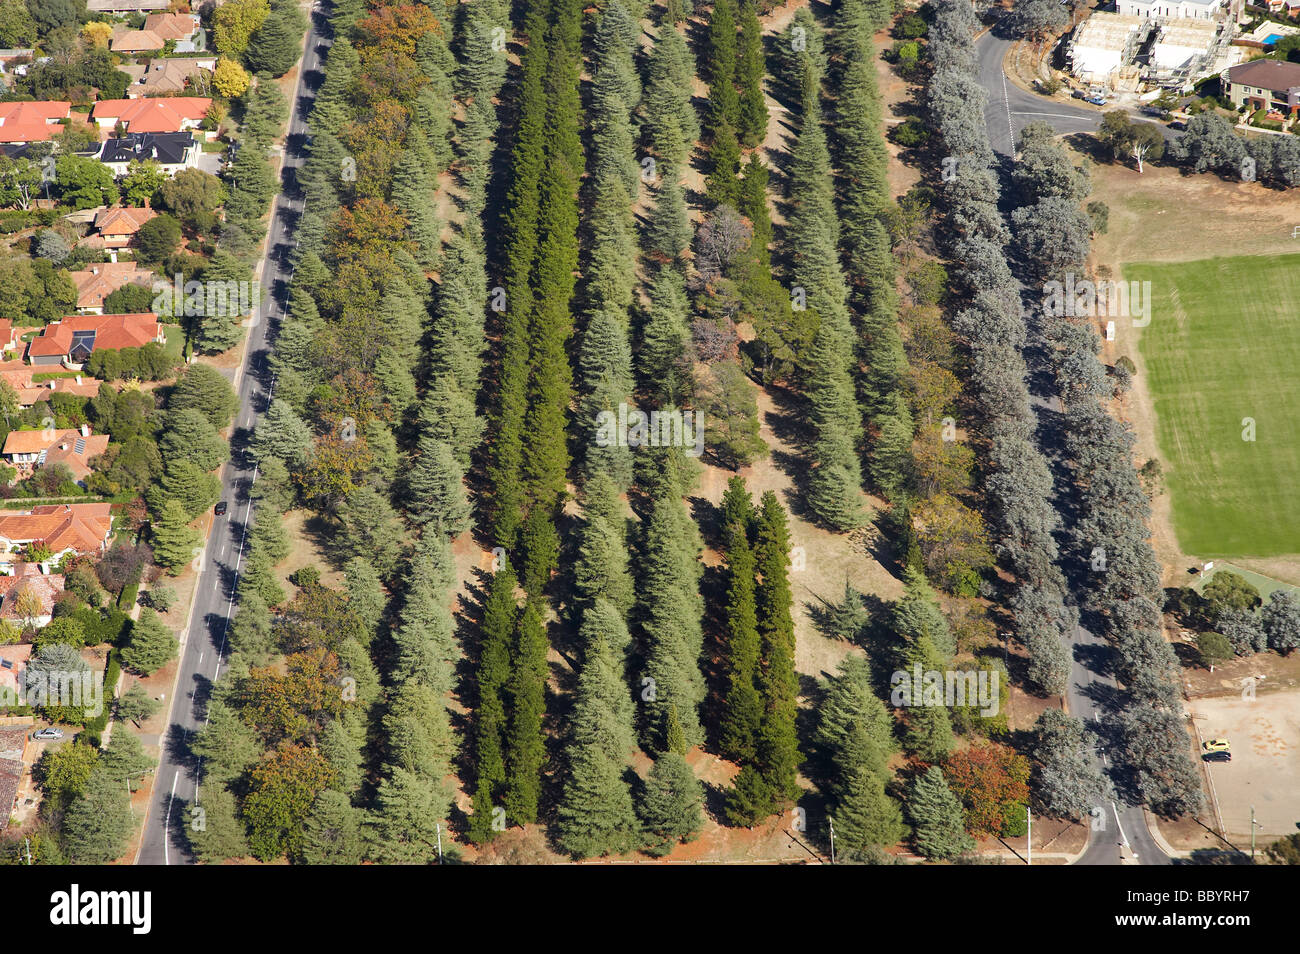 Rows of Conifers Haig Park Canberra ACT Australia aerial - Stock Image